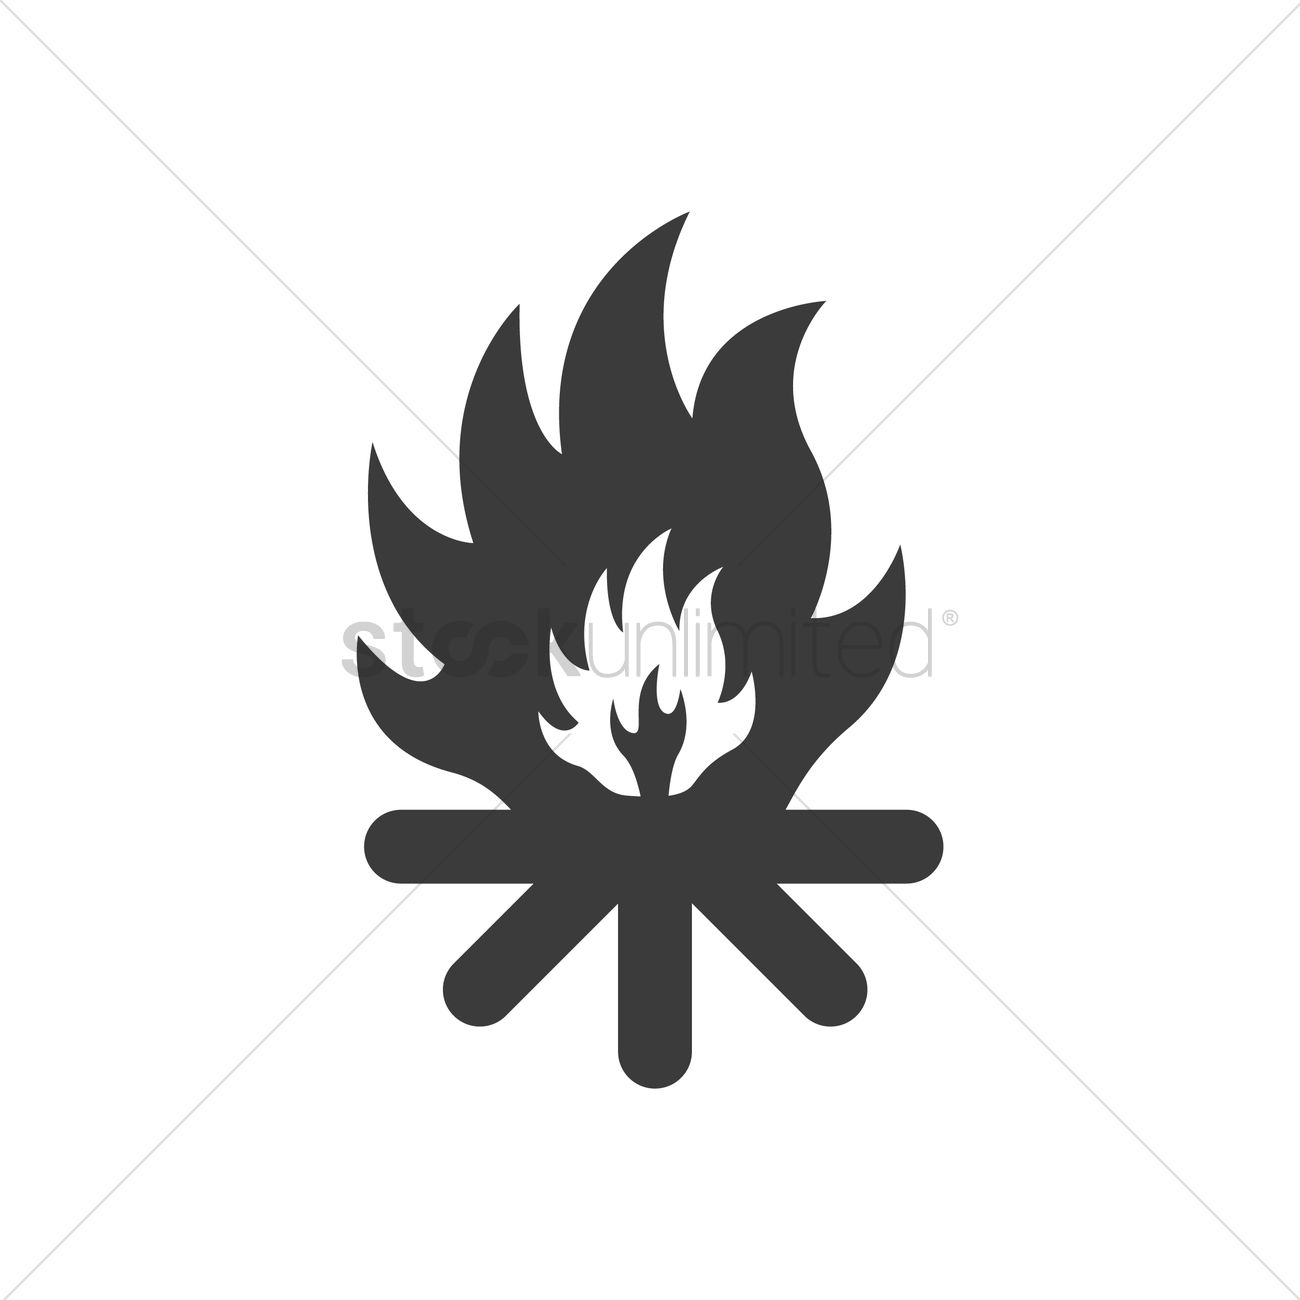 Flammable symbol vector image 2029530 stockunlimited flammable symbol vector graphic buycottarizona